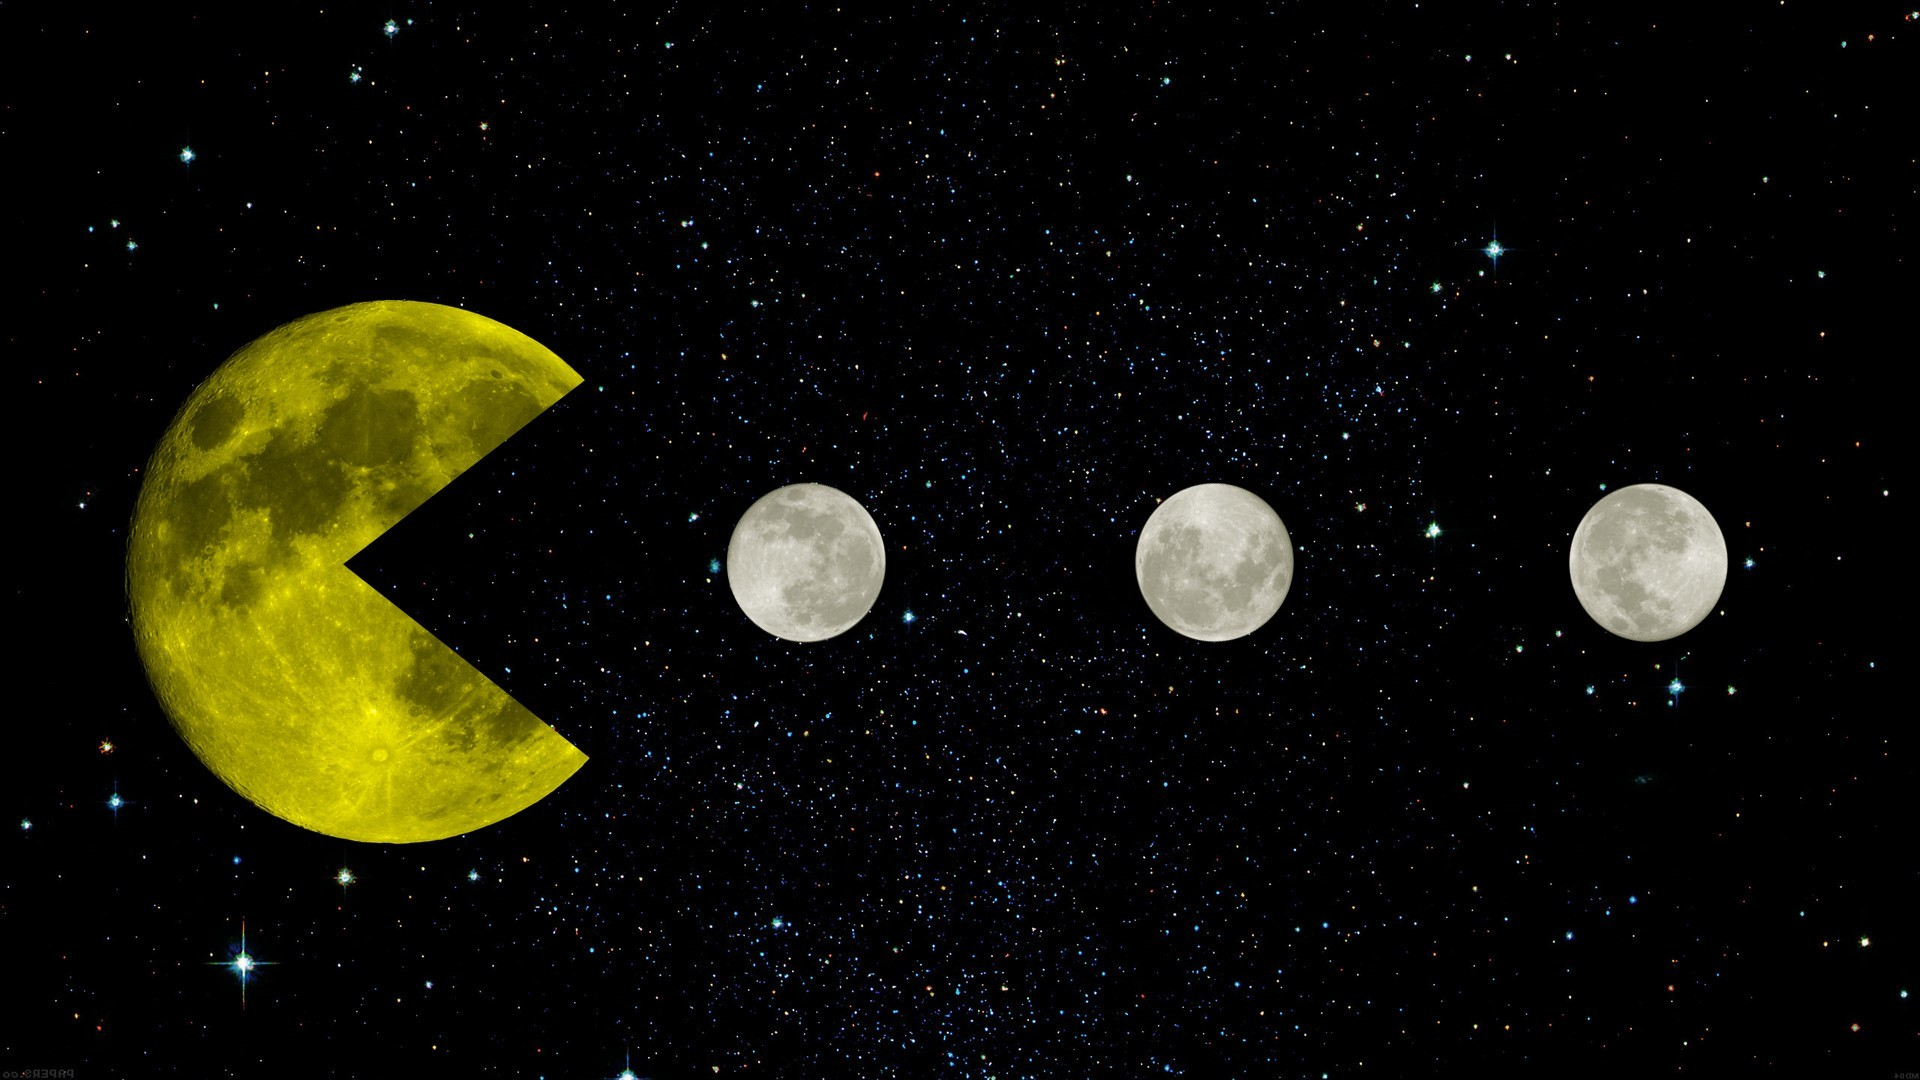 Pac Man, Yellow, Space, Moon, Moon, Stars, Black, Retro Games, Creative  Design, Infinity Wallpapers HD / Desktop and Mobile Backgrounds